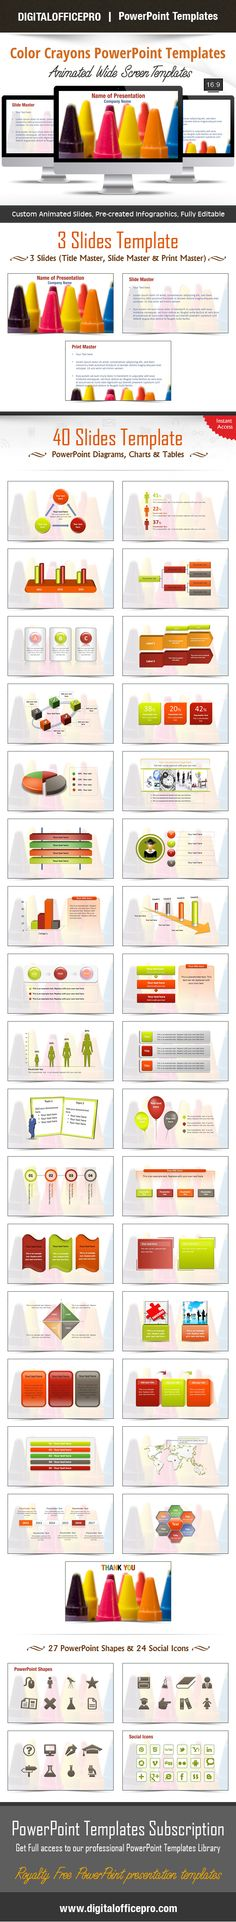 Impress and engage your audience with colorful crayons powerpoint color crayons powerpoint template backgrounds toneelgroepblik Image collections